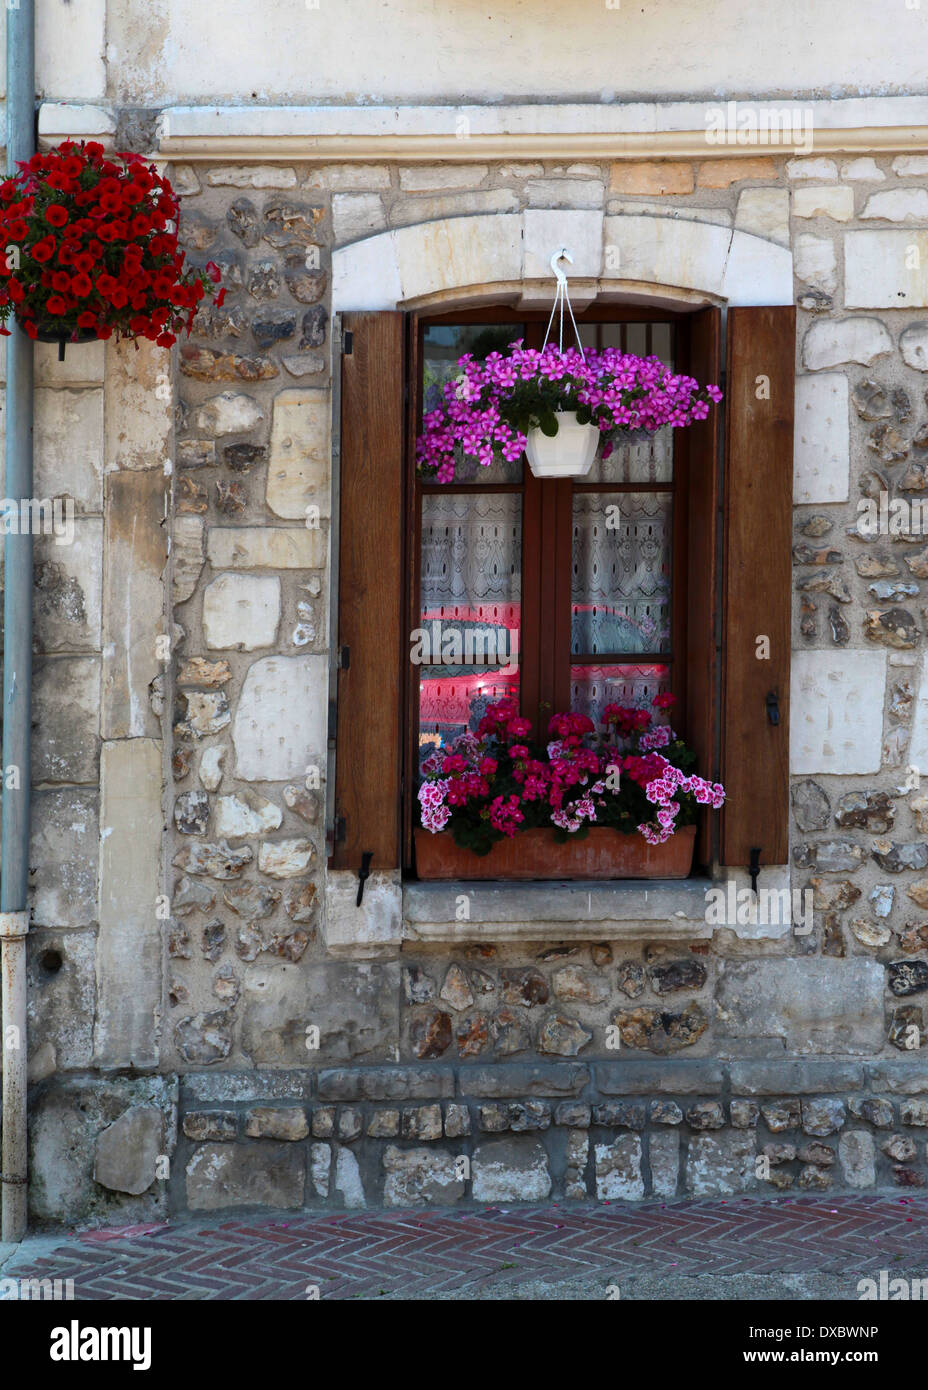 Window with window box, flowers and hanging basket in the pretty village of le Bec Hellouin, Normandy, France - Stock Image